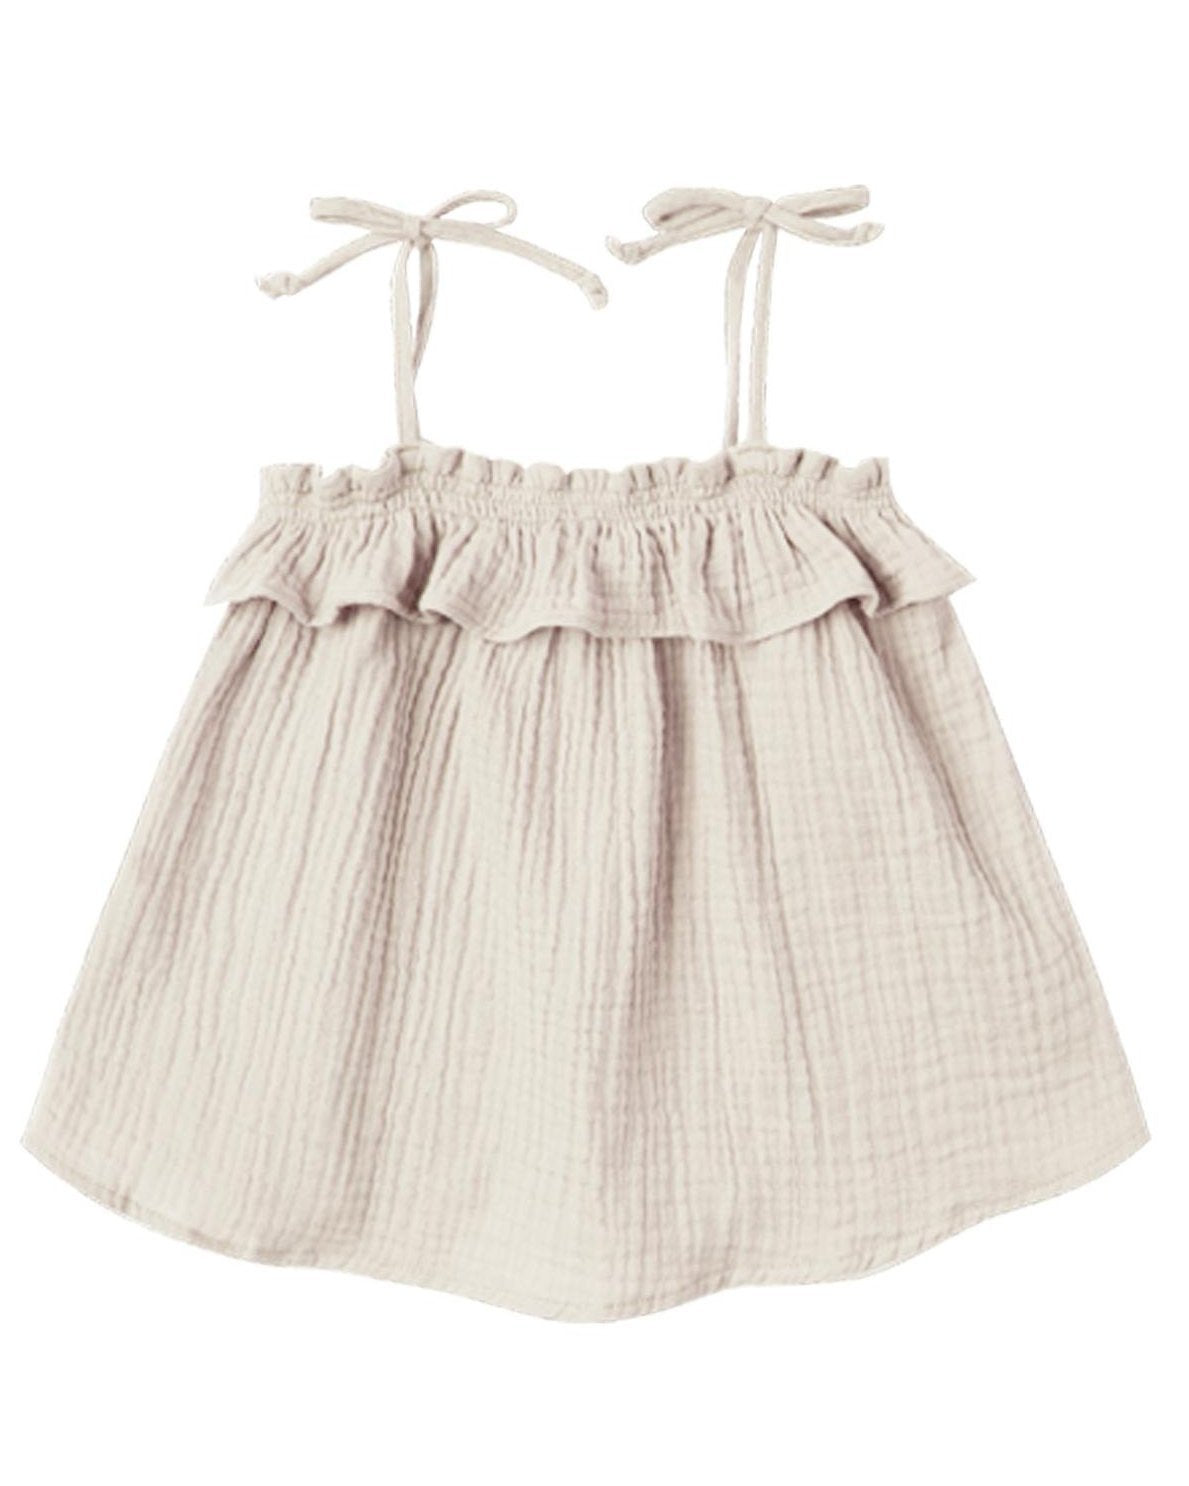 Little rylee + cru baby girl ruffle tube top in natural